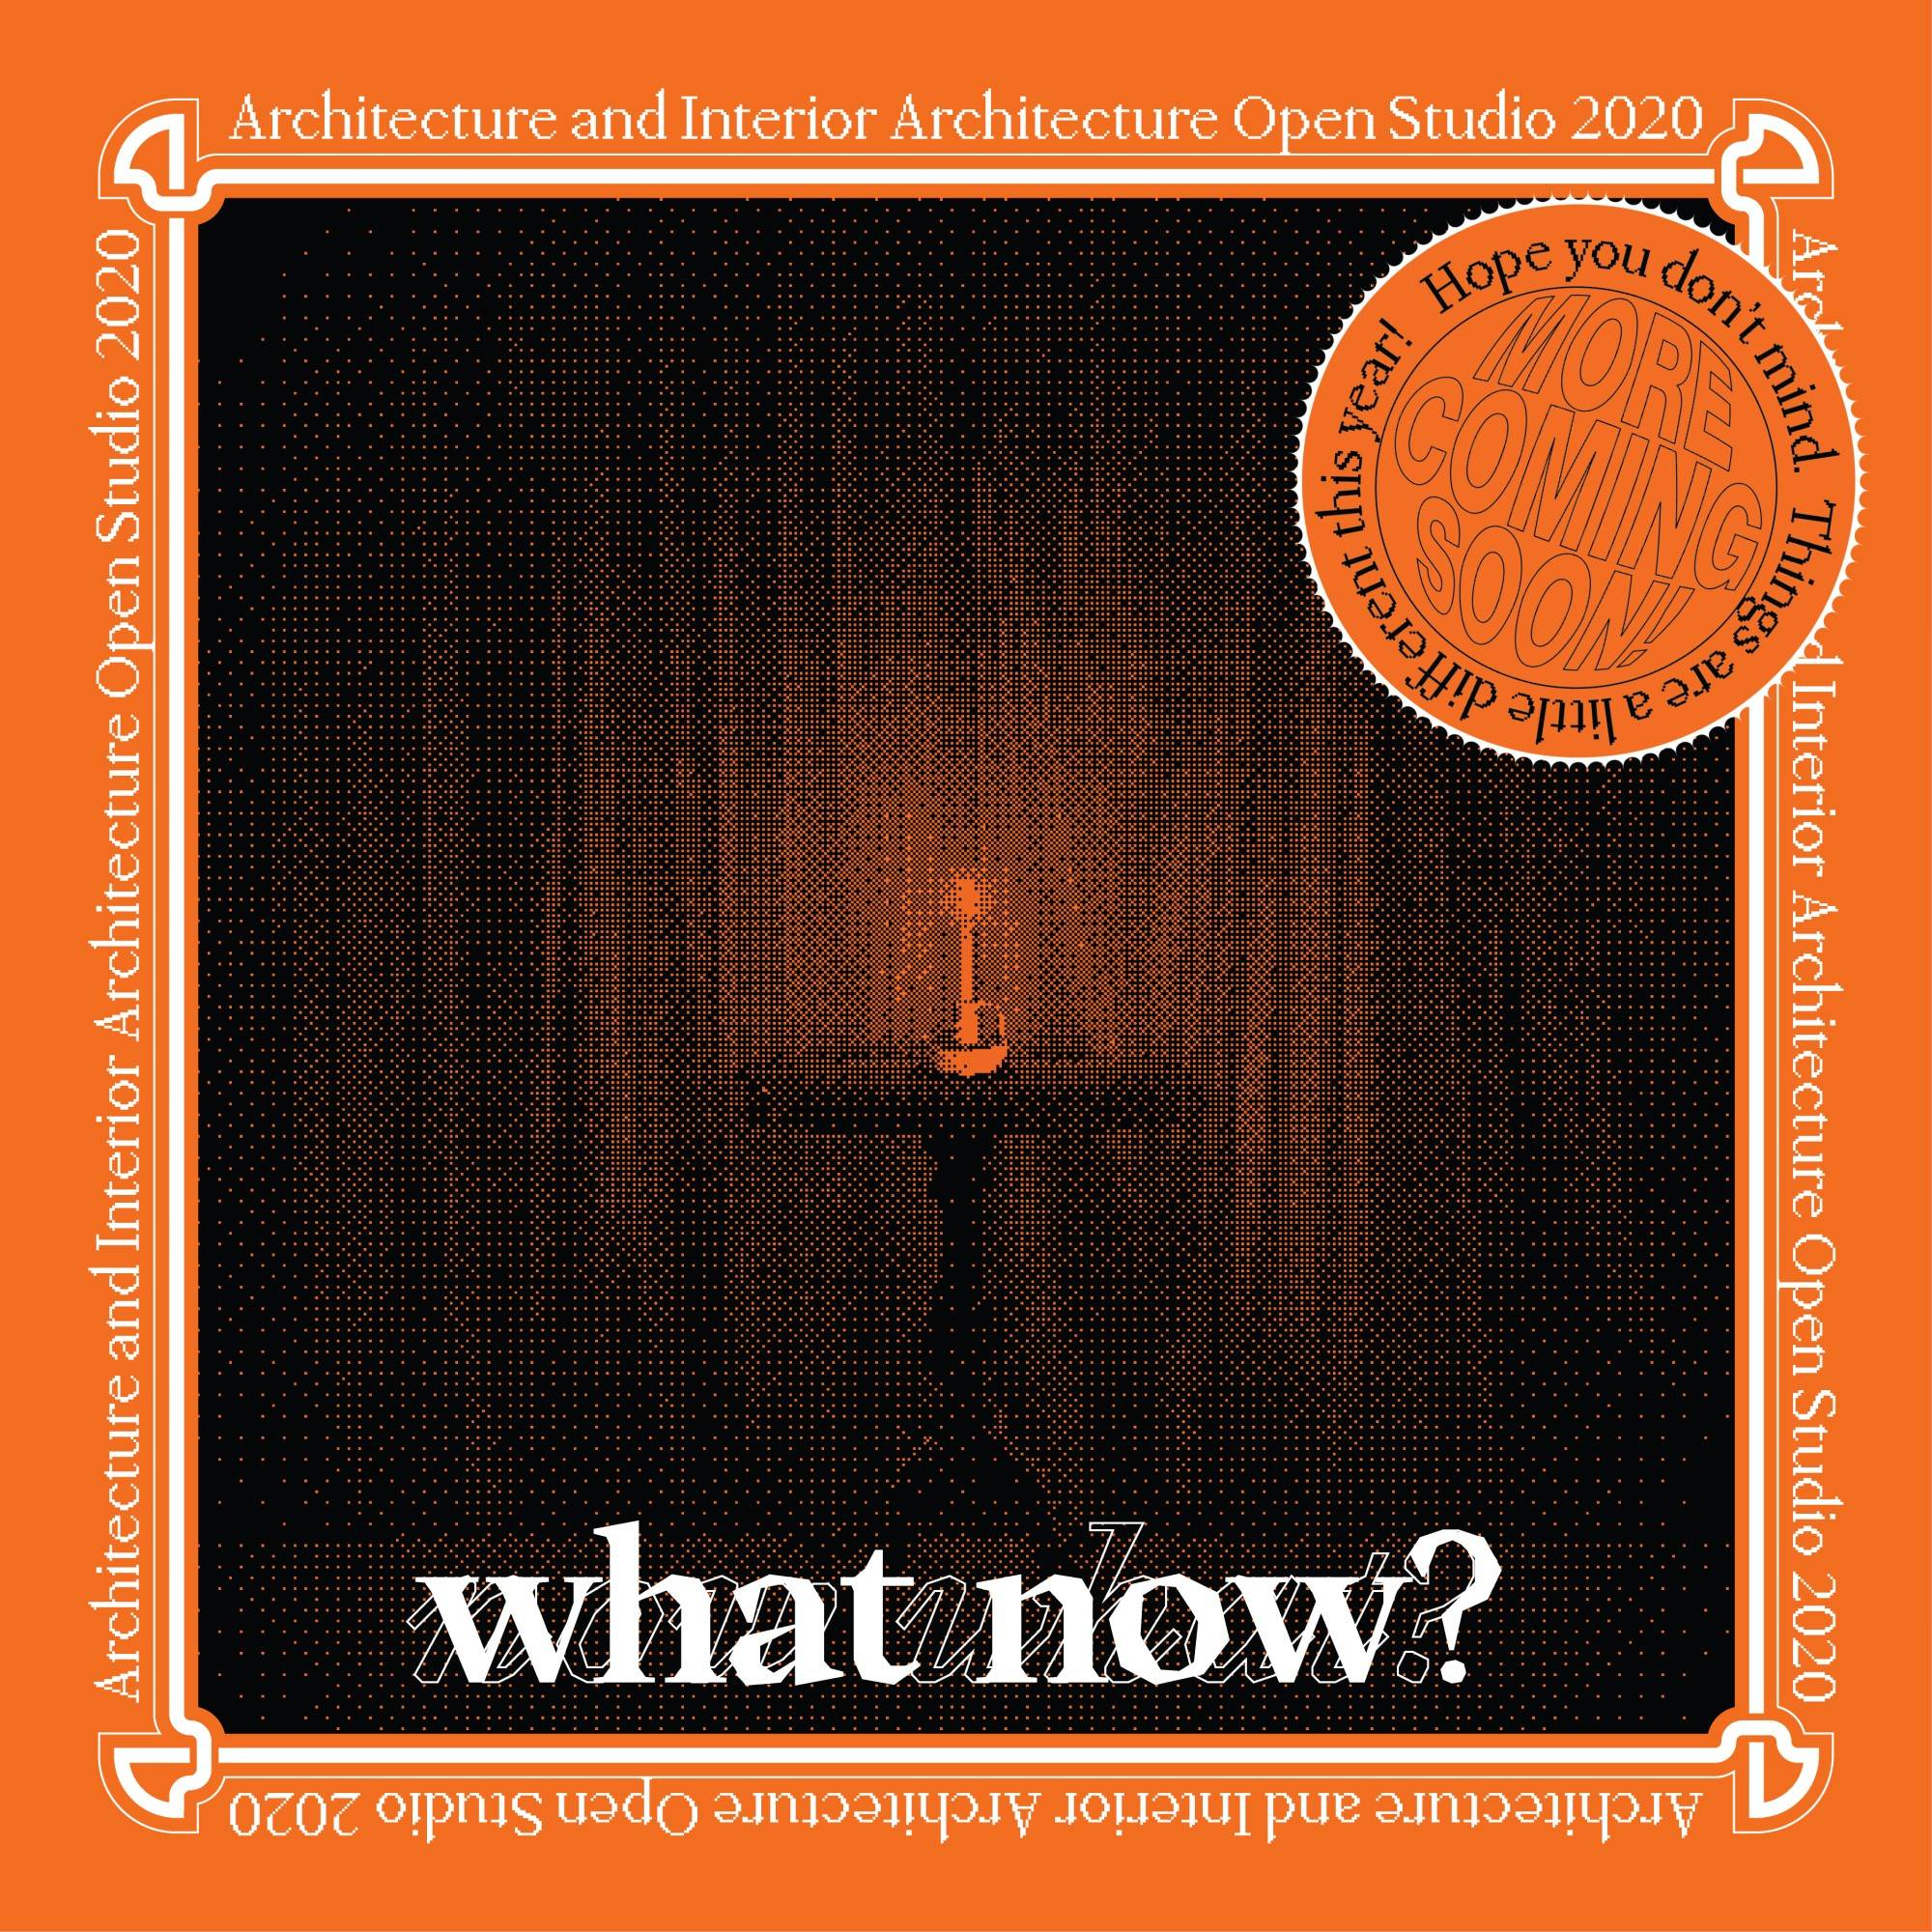 WHAT NOW NOW WHAT - TEASER 003 2.jpg